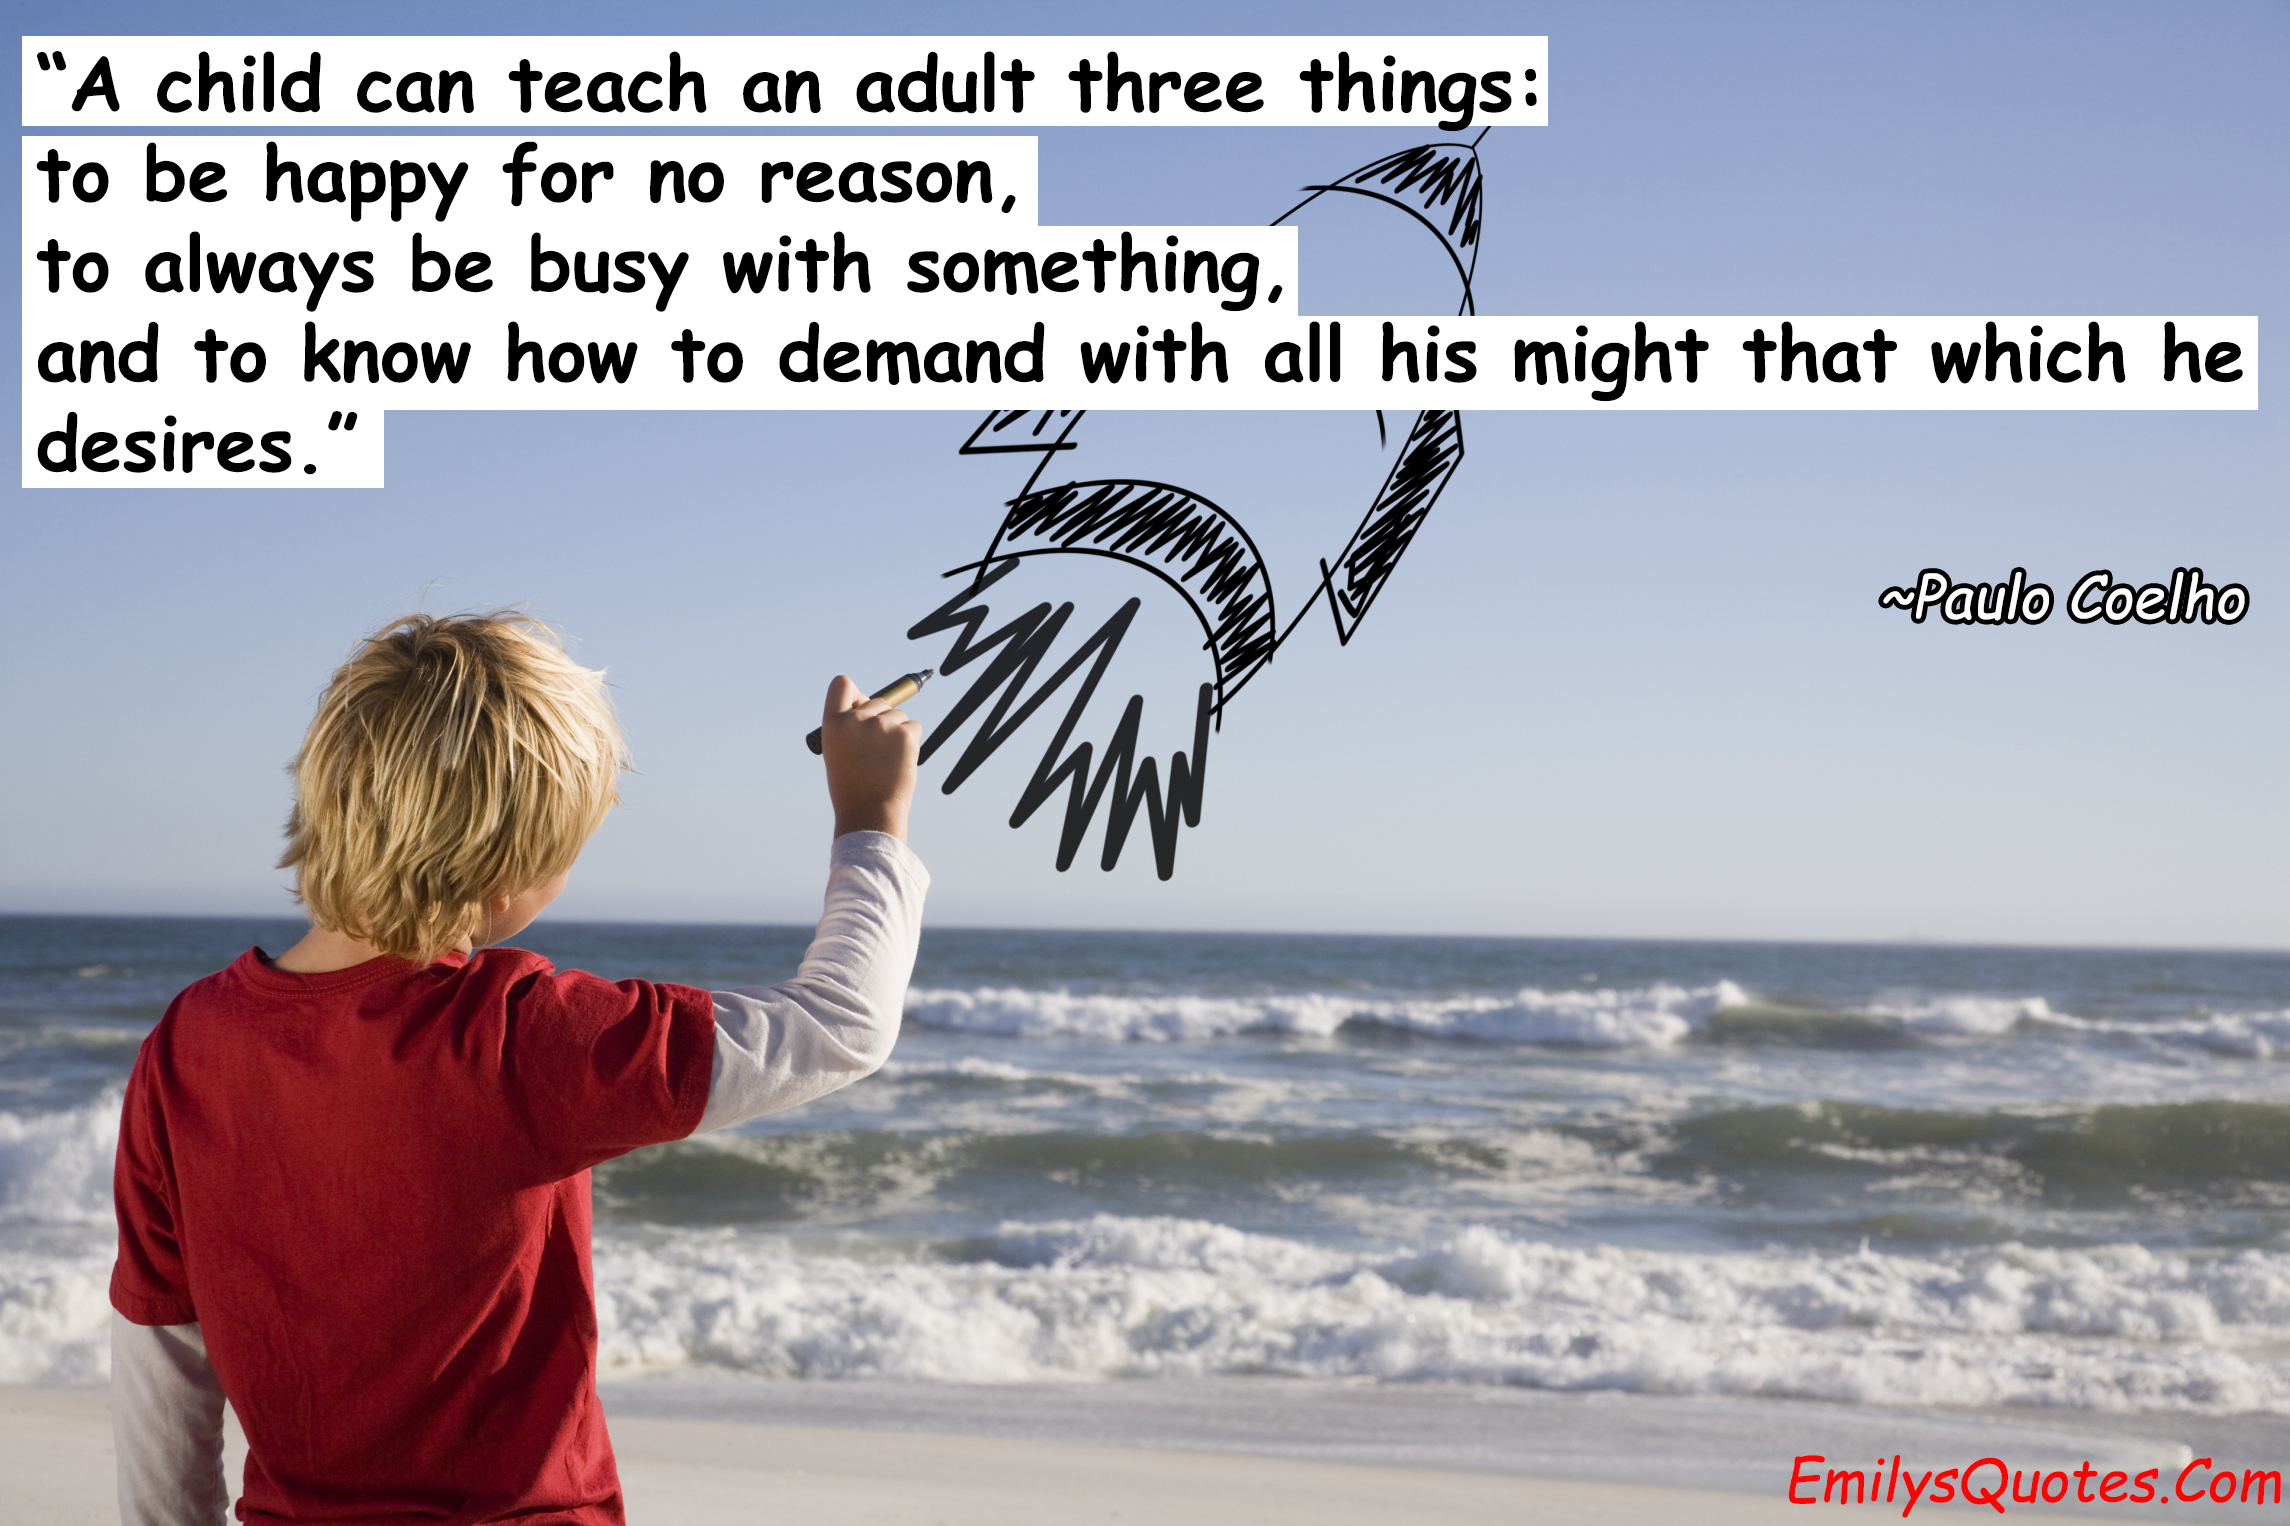 Quotes About Teaching Children A Child Can Teach An Adult Three Things To Be Happy For No Reason